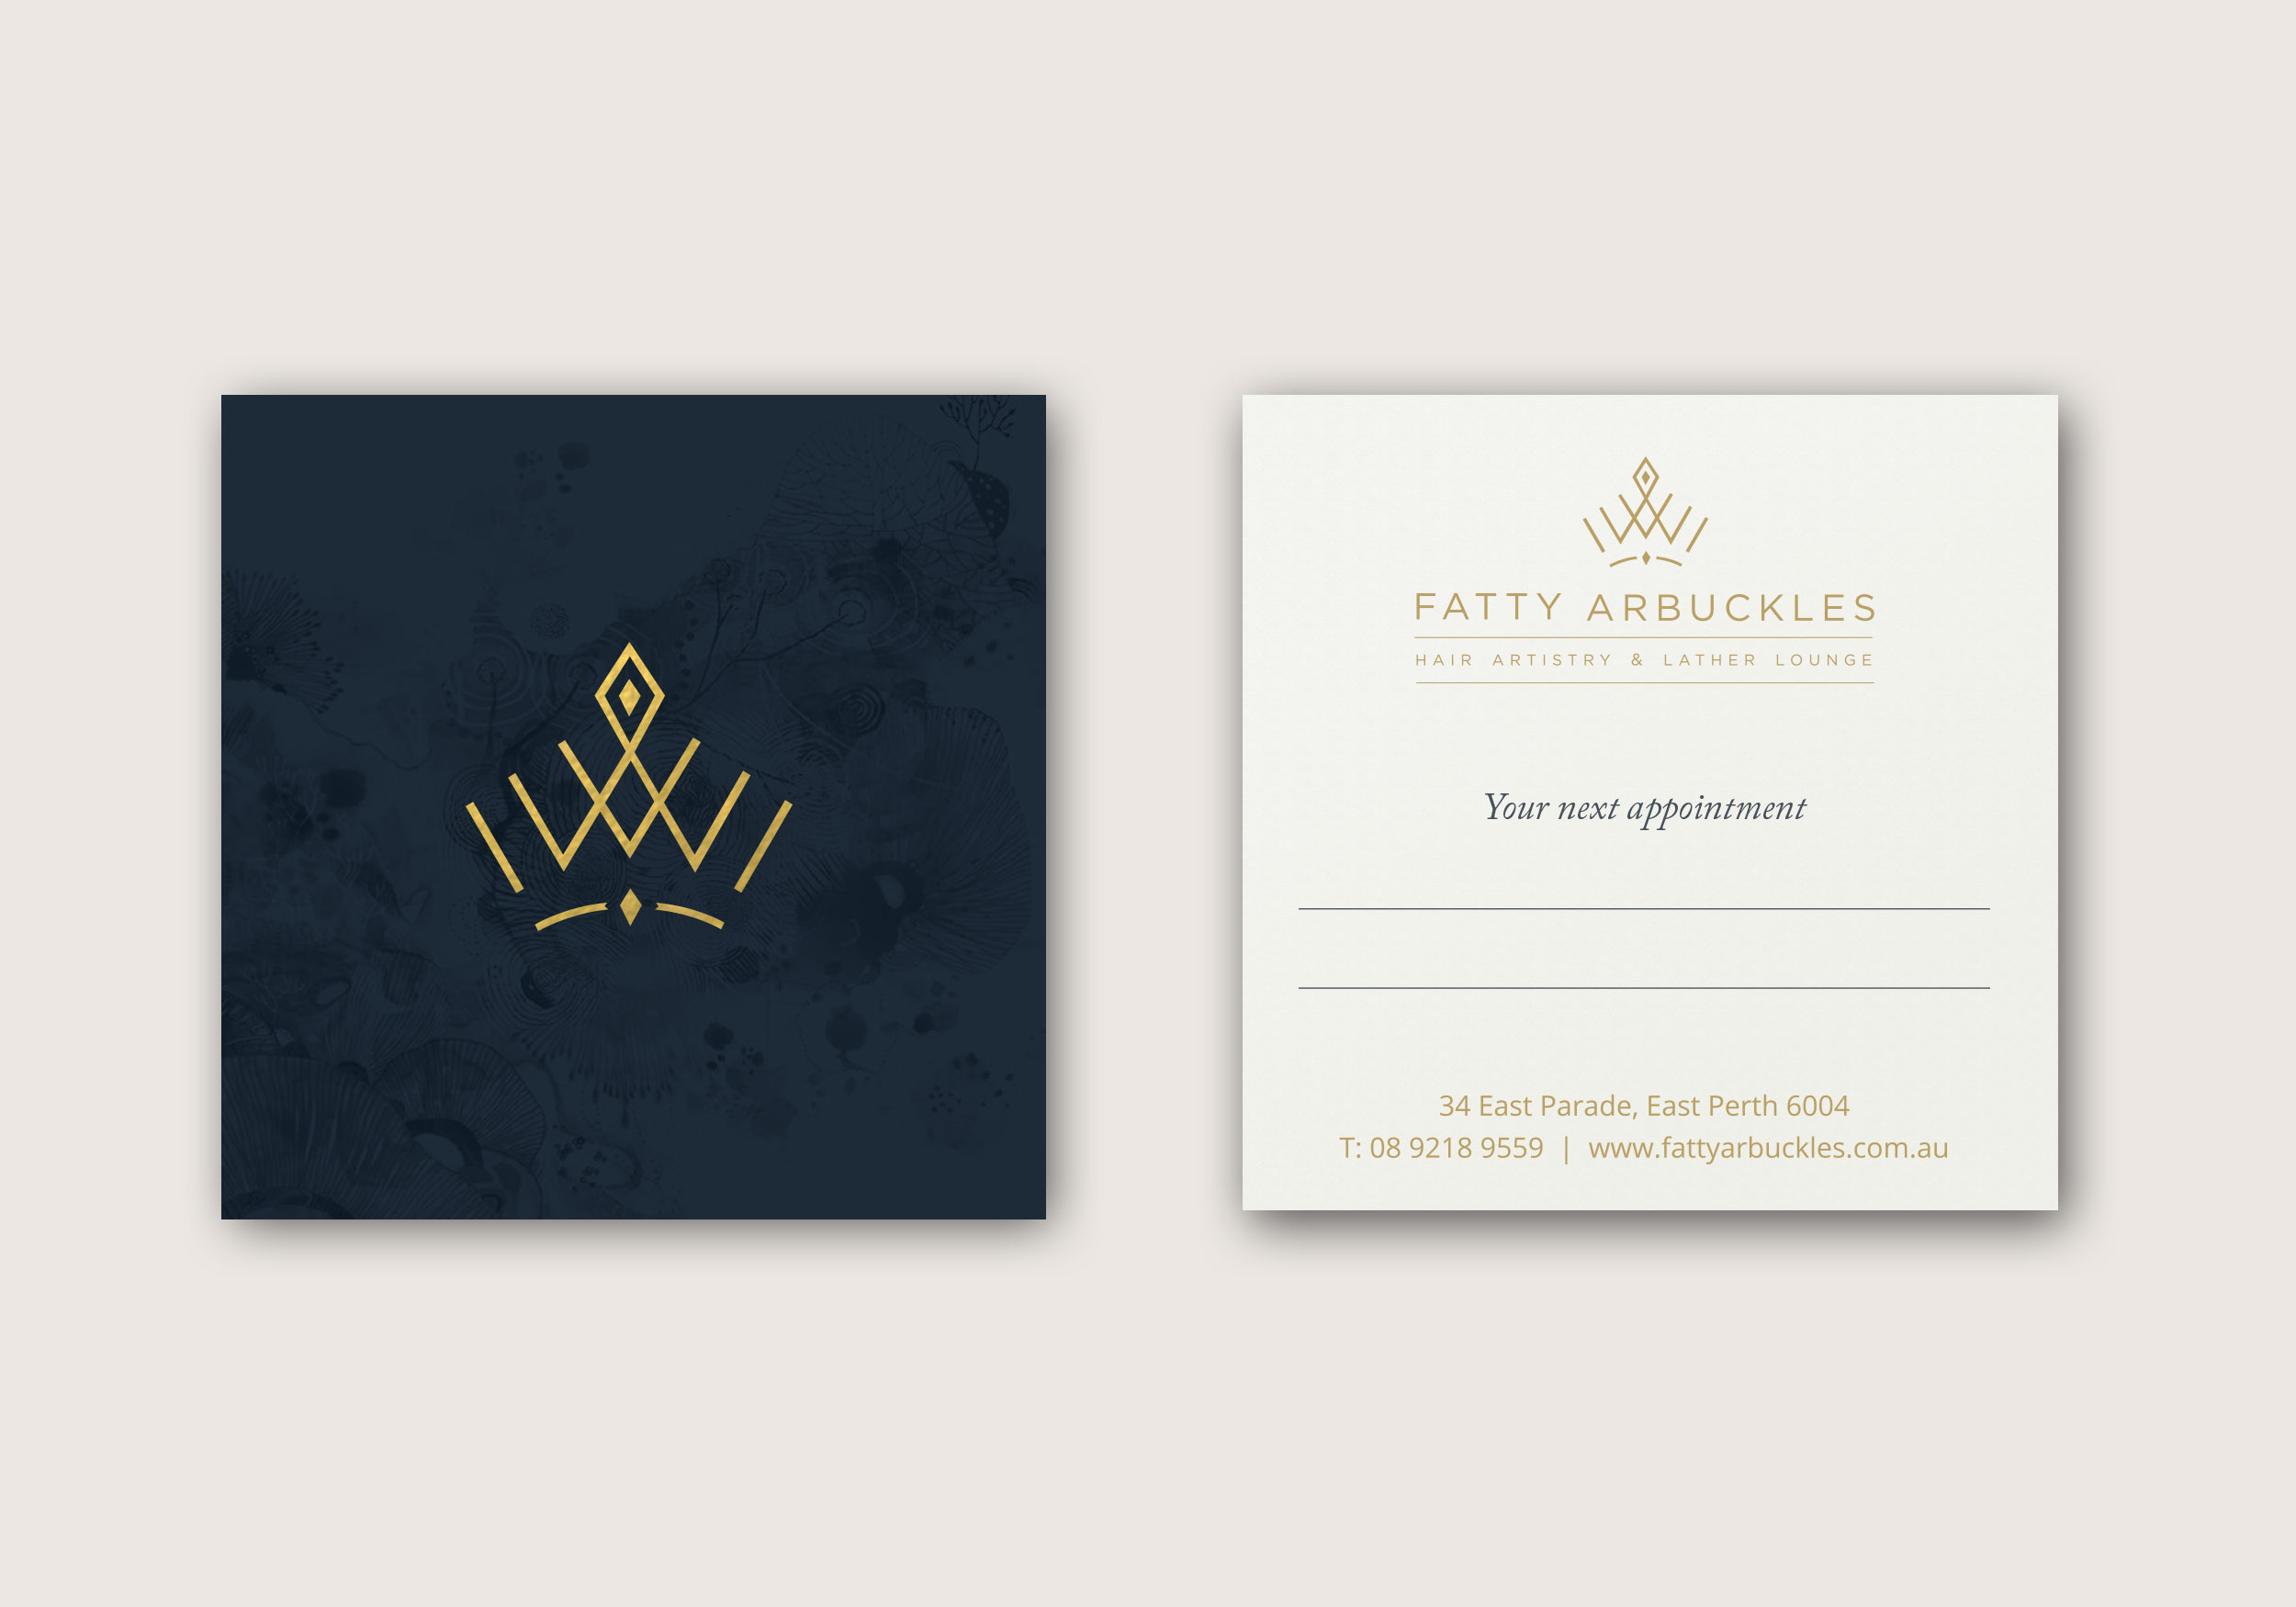 Modern, elegant, and classic business card design for a hair salon based in Perth, Australia.